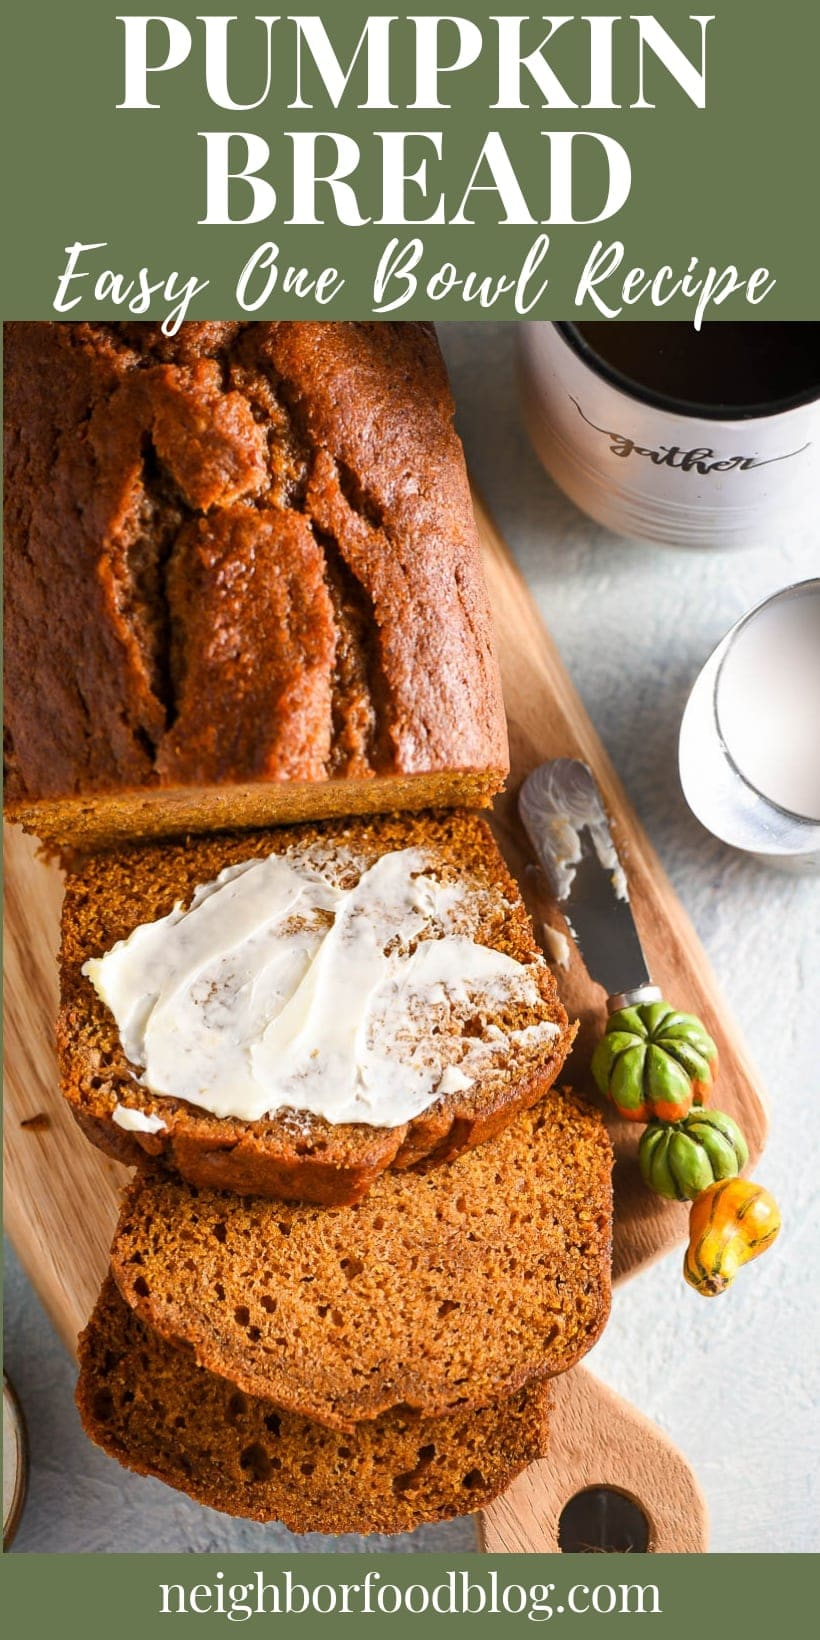 Pumpkin Bread slices with butter